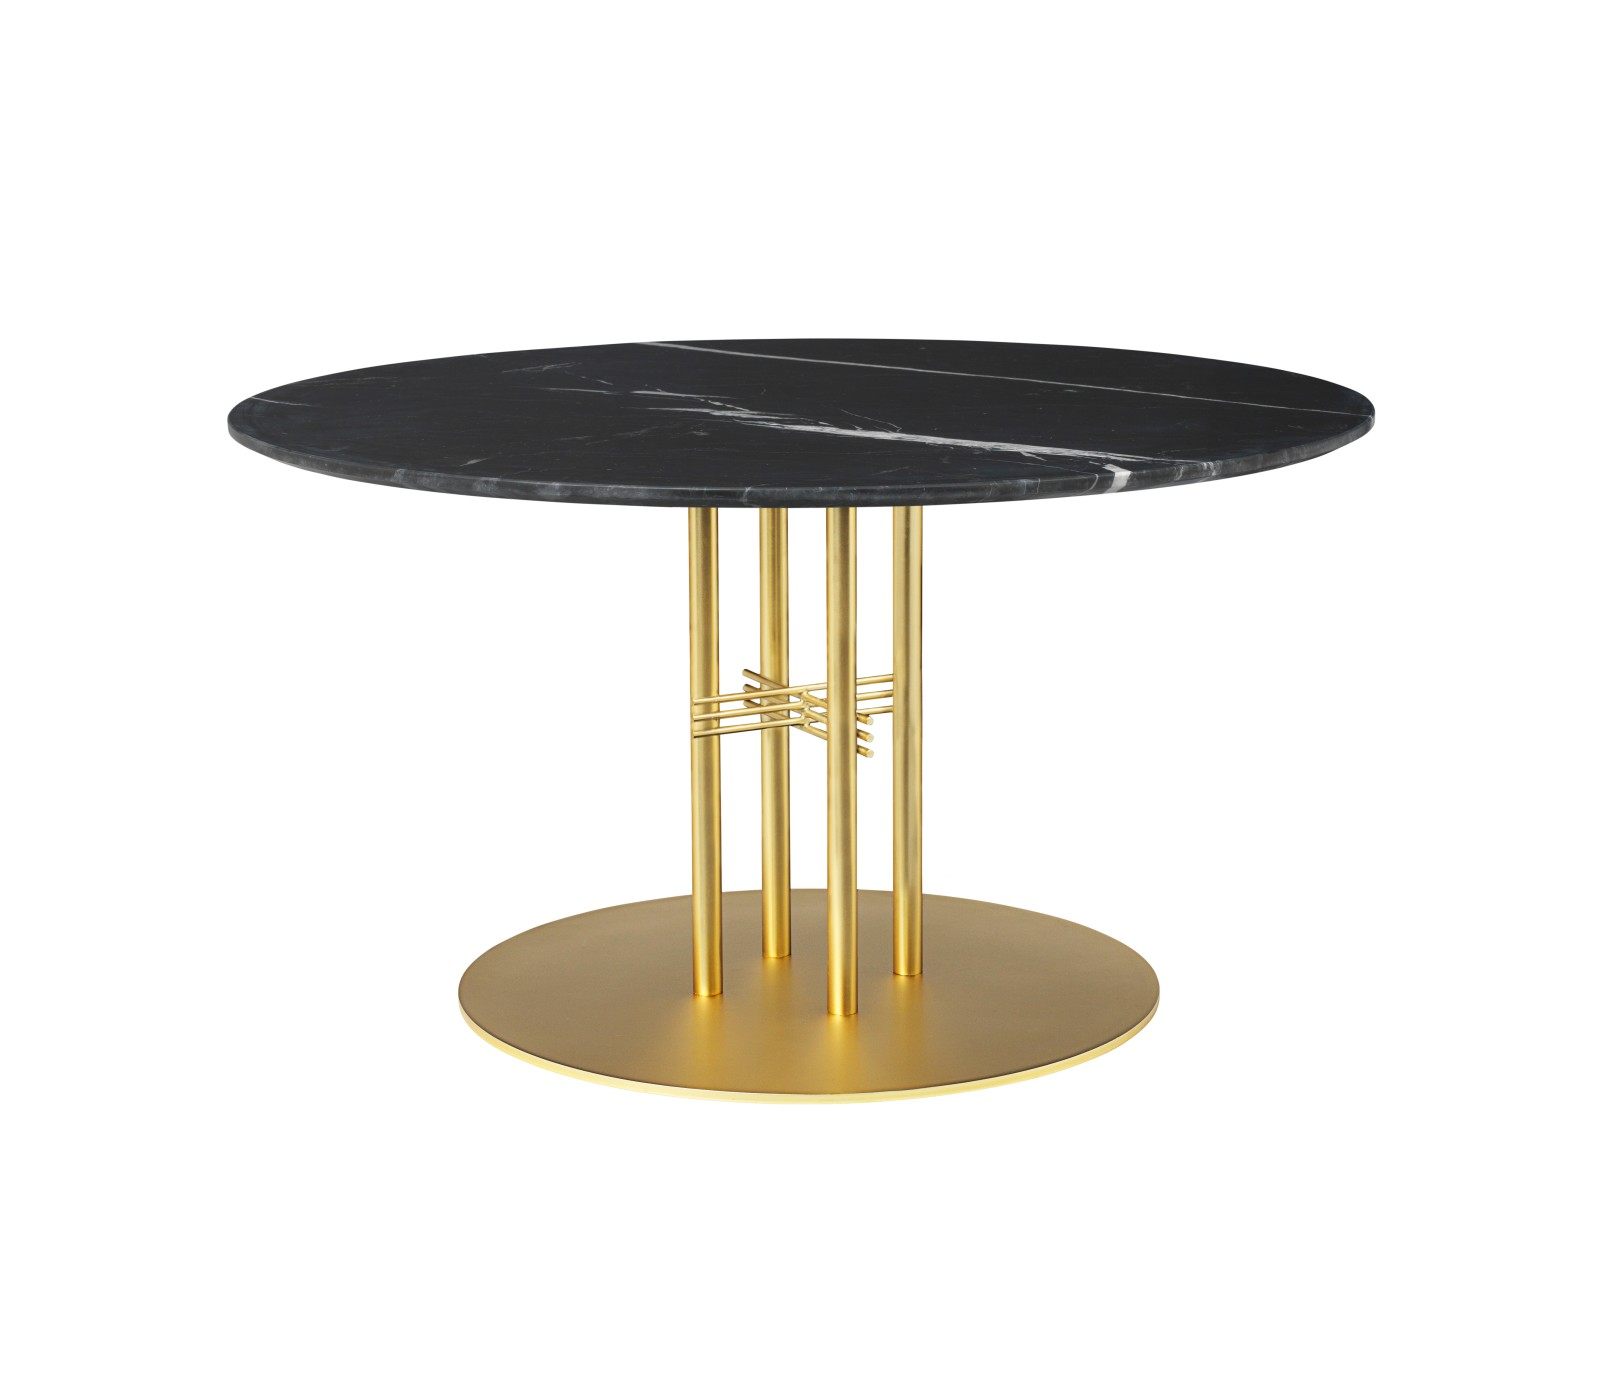 TS Column Lounge Table Marble 0110, Frame Brass, Gubi Marble Nero Marquina